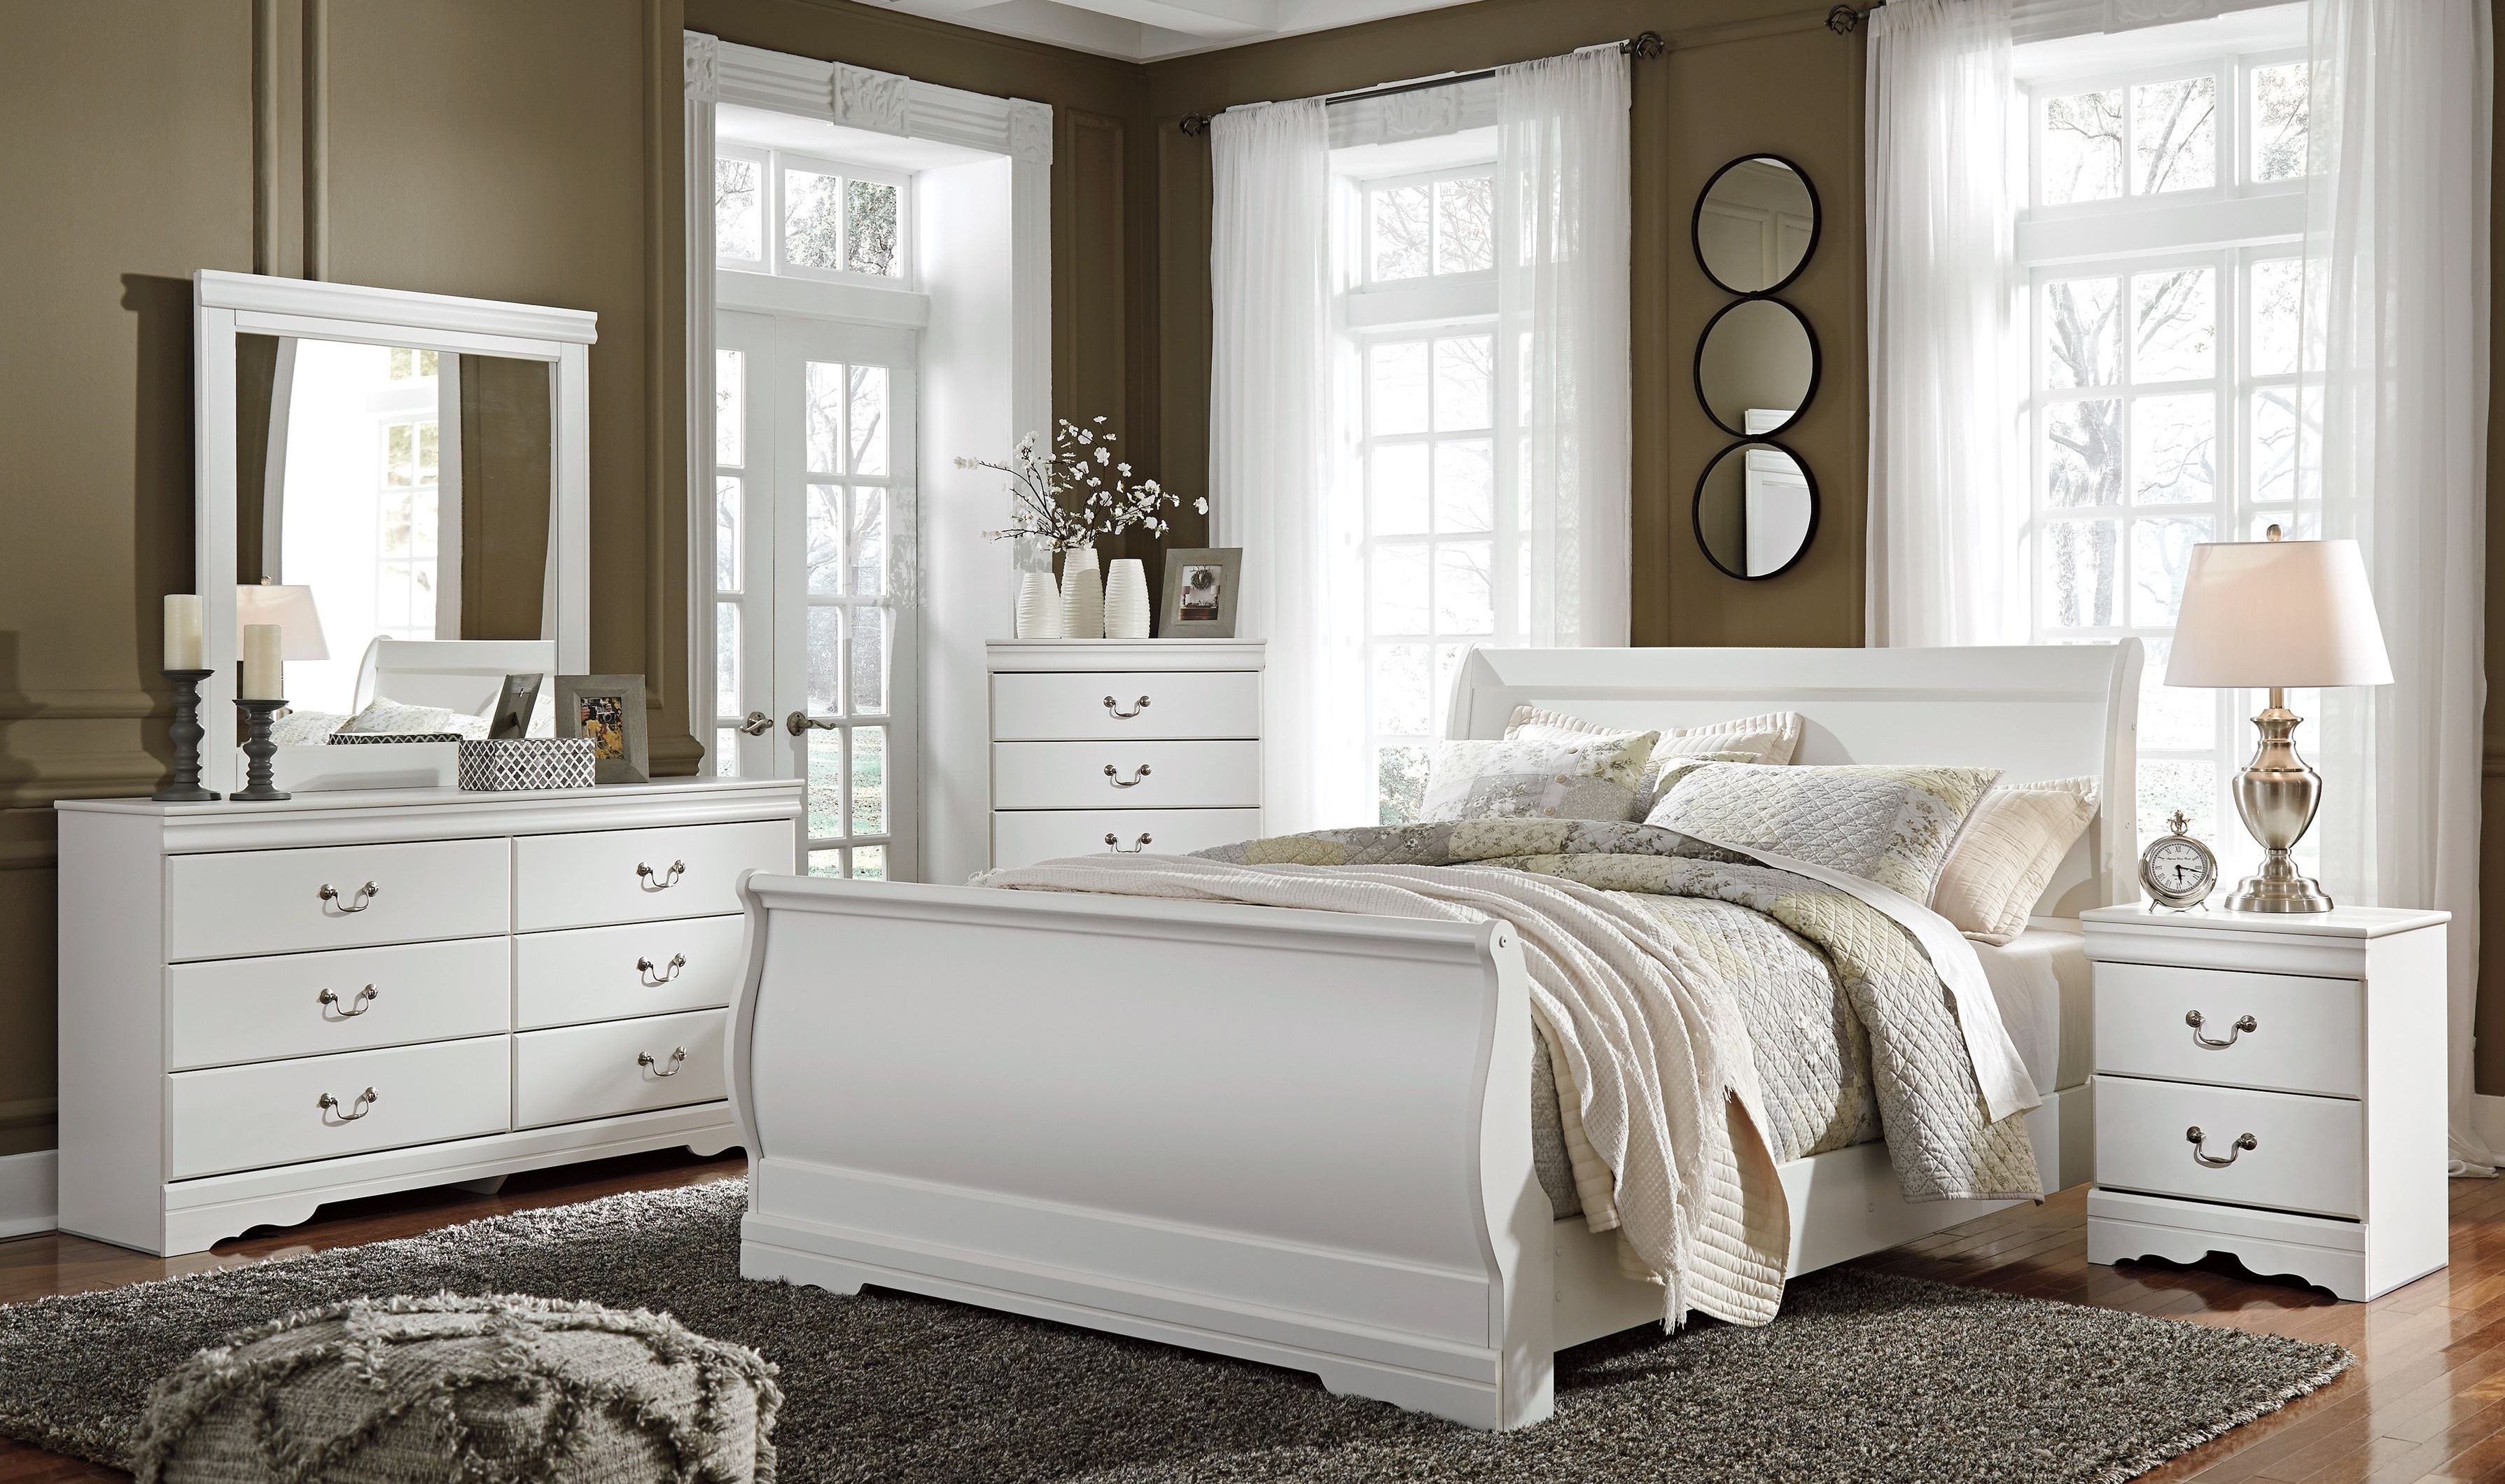 anarasia white youth sleigh bedroom set b129 63 62 82 ashley